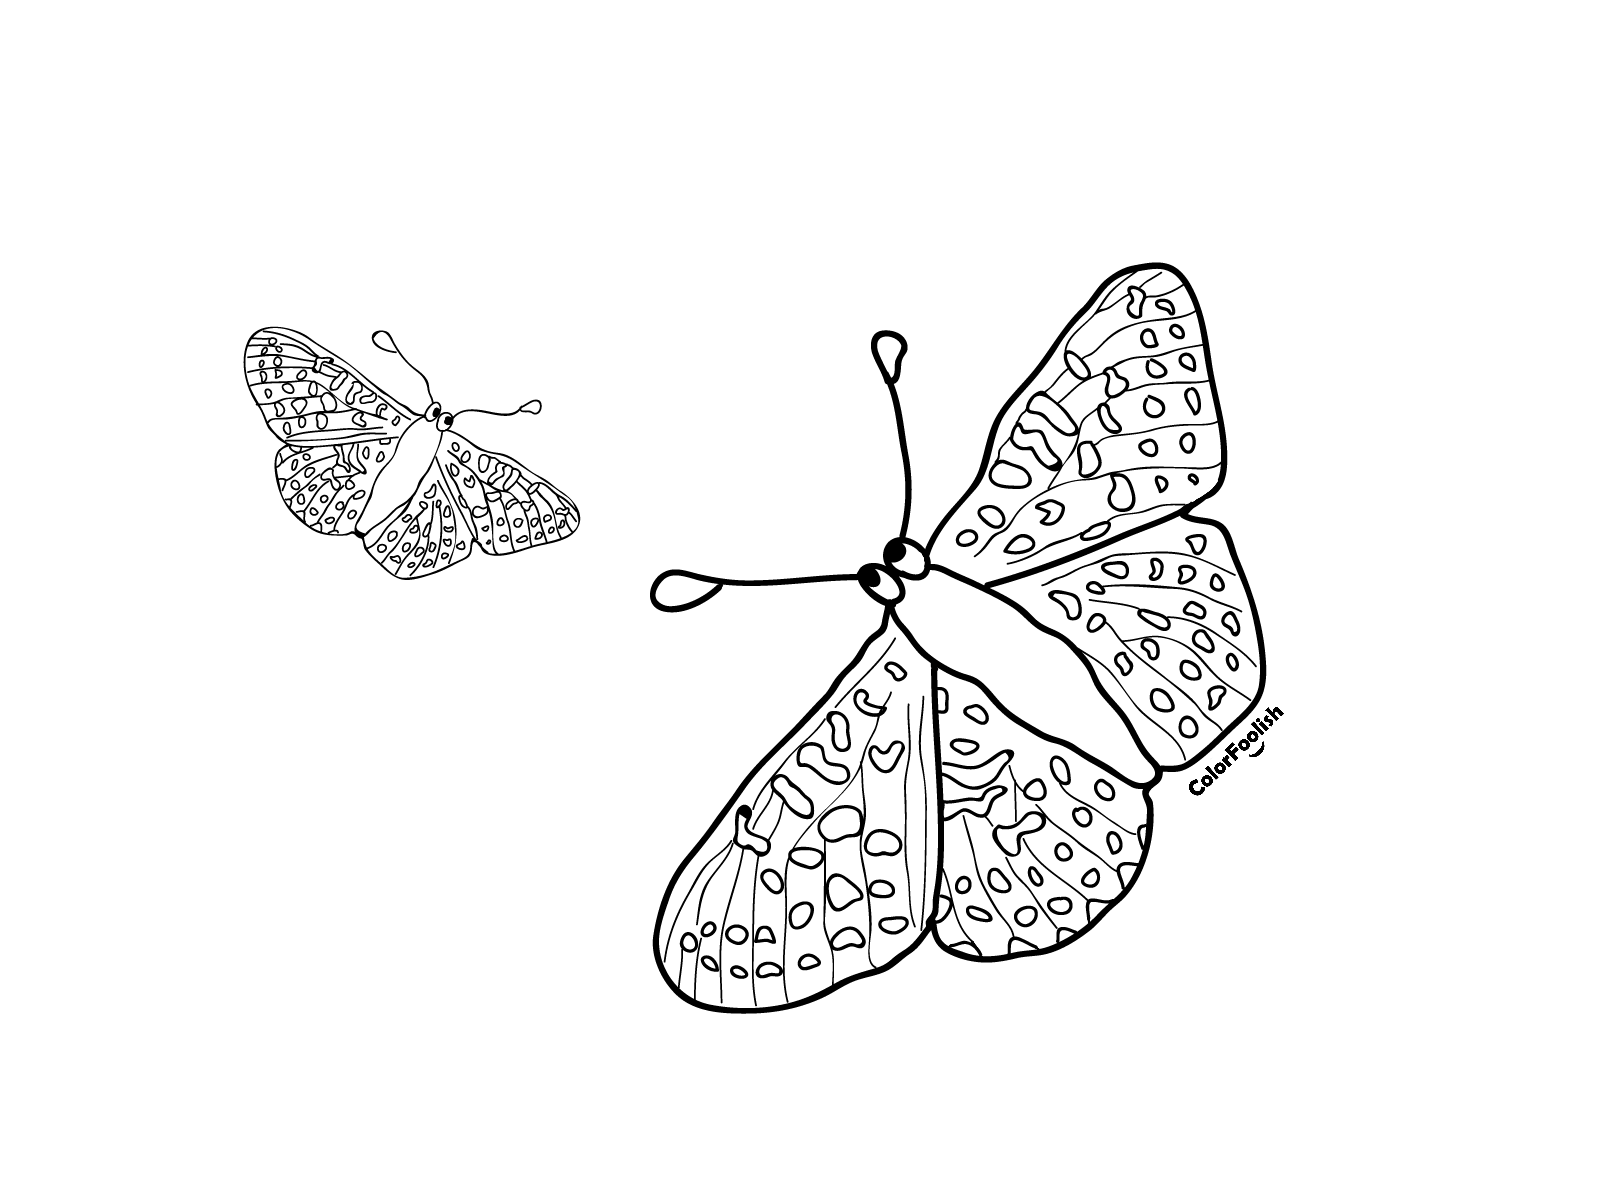 Coloring page with two butterflies